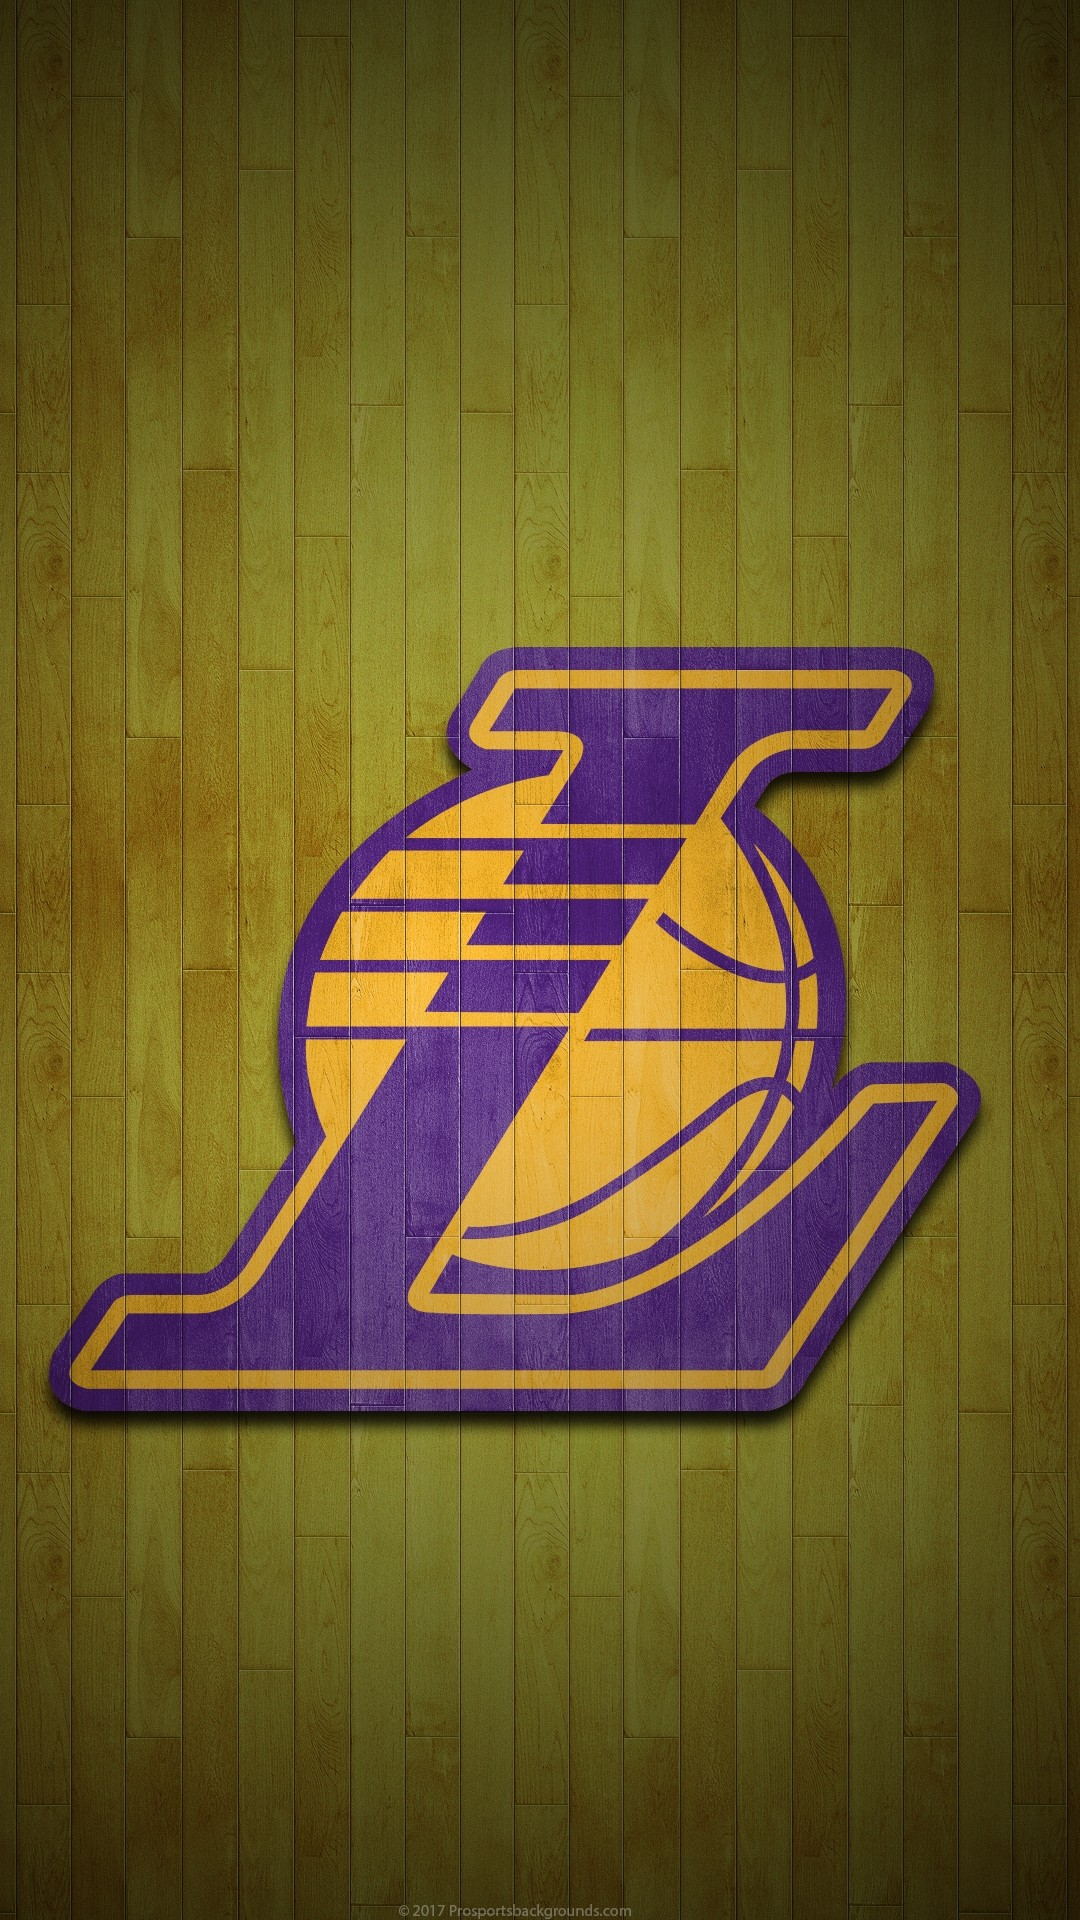 Nba Basketball Los Angeles Lakers: Los Angeles Lakers Wallpapers (73+ Background Pictures